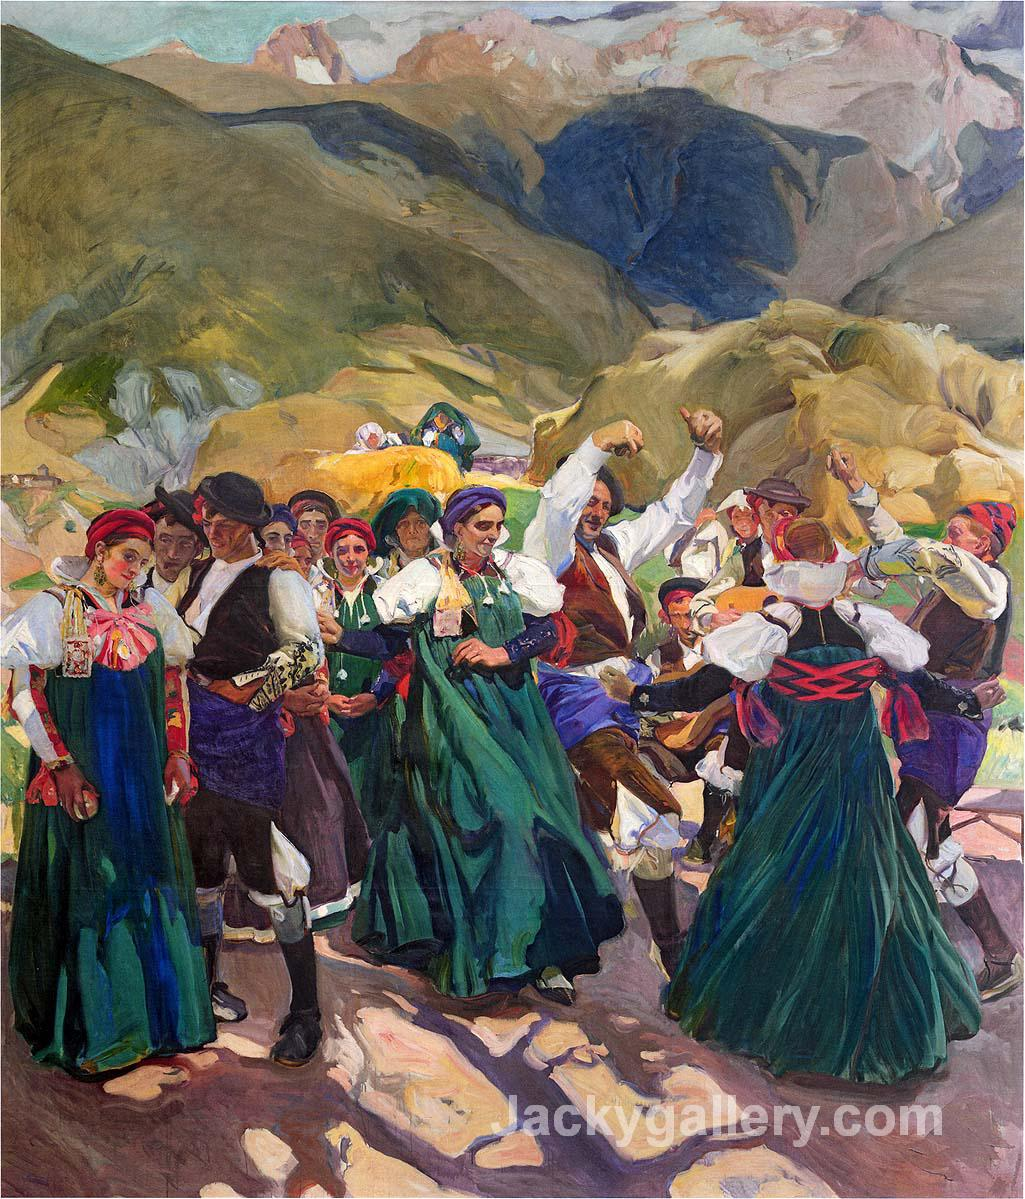 Aragon, Jota by Joaquin Sorolla y Bastida paintings reproduction